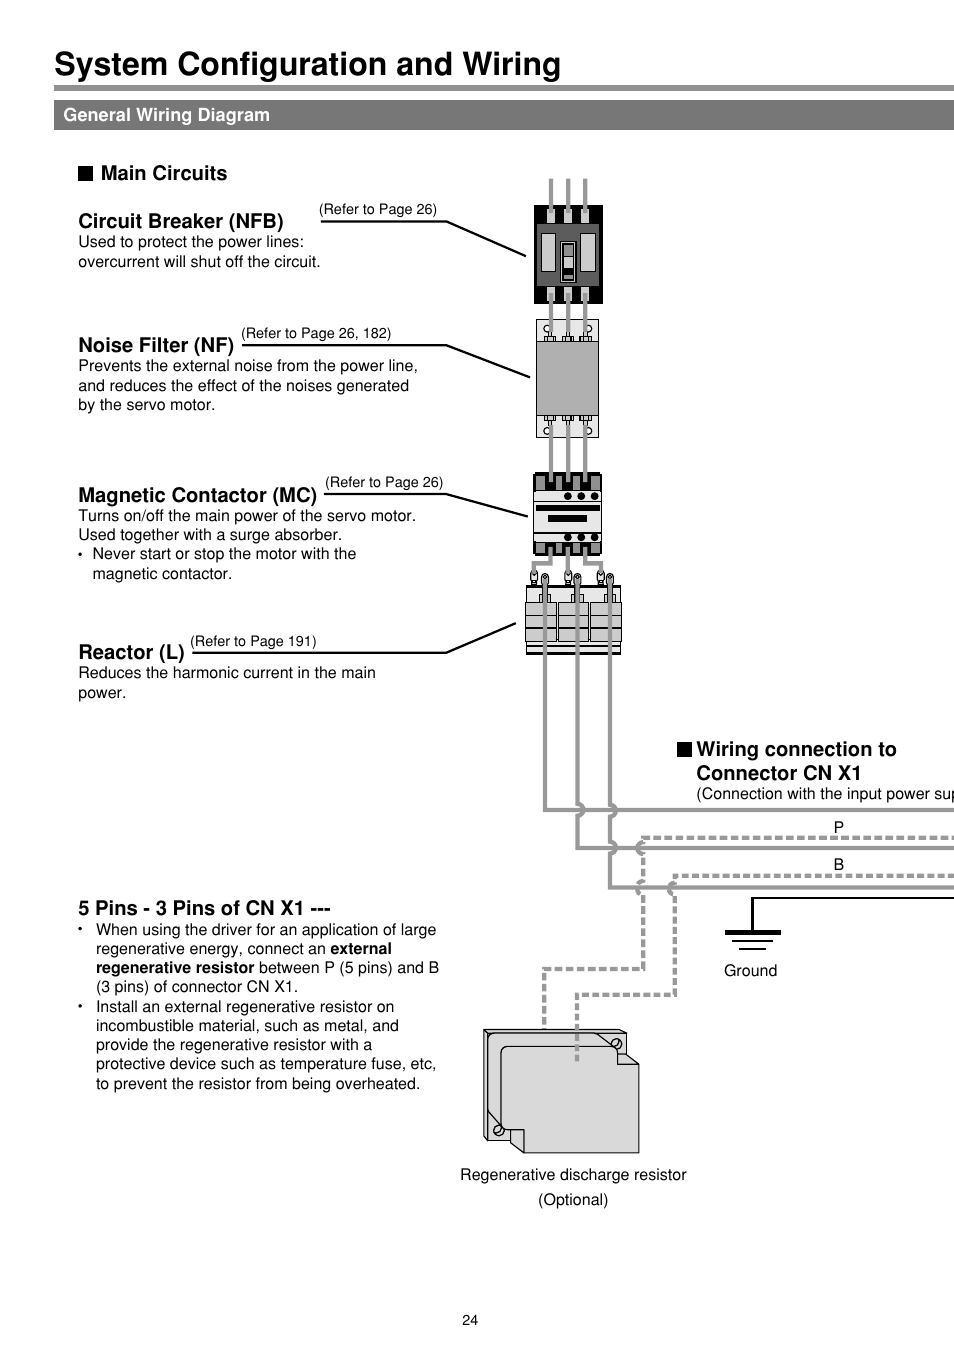 System Configuration And Wiring General Diagram Panasonic Surge Protection Device Minas E Series User Manual Page 24 216